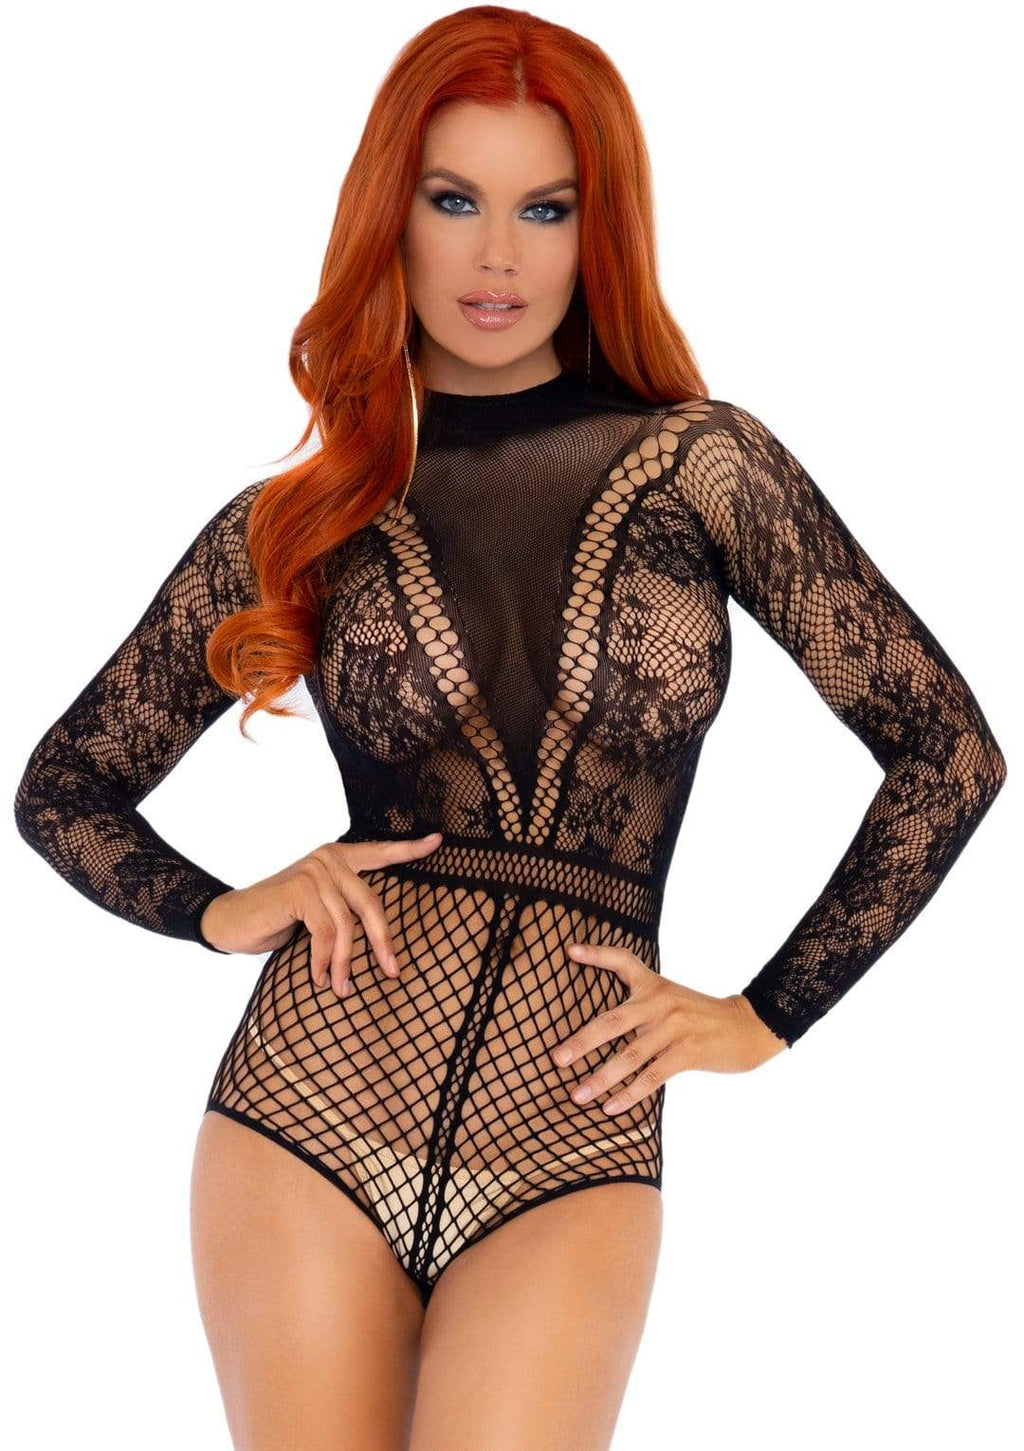 Lace and Fishnet Bodysuit - One Size - Black - Leg Avenue -  Los Angeles Lingerie